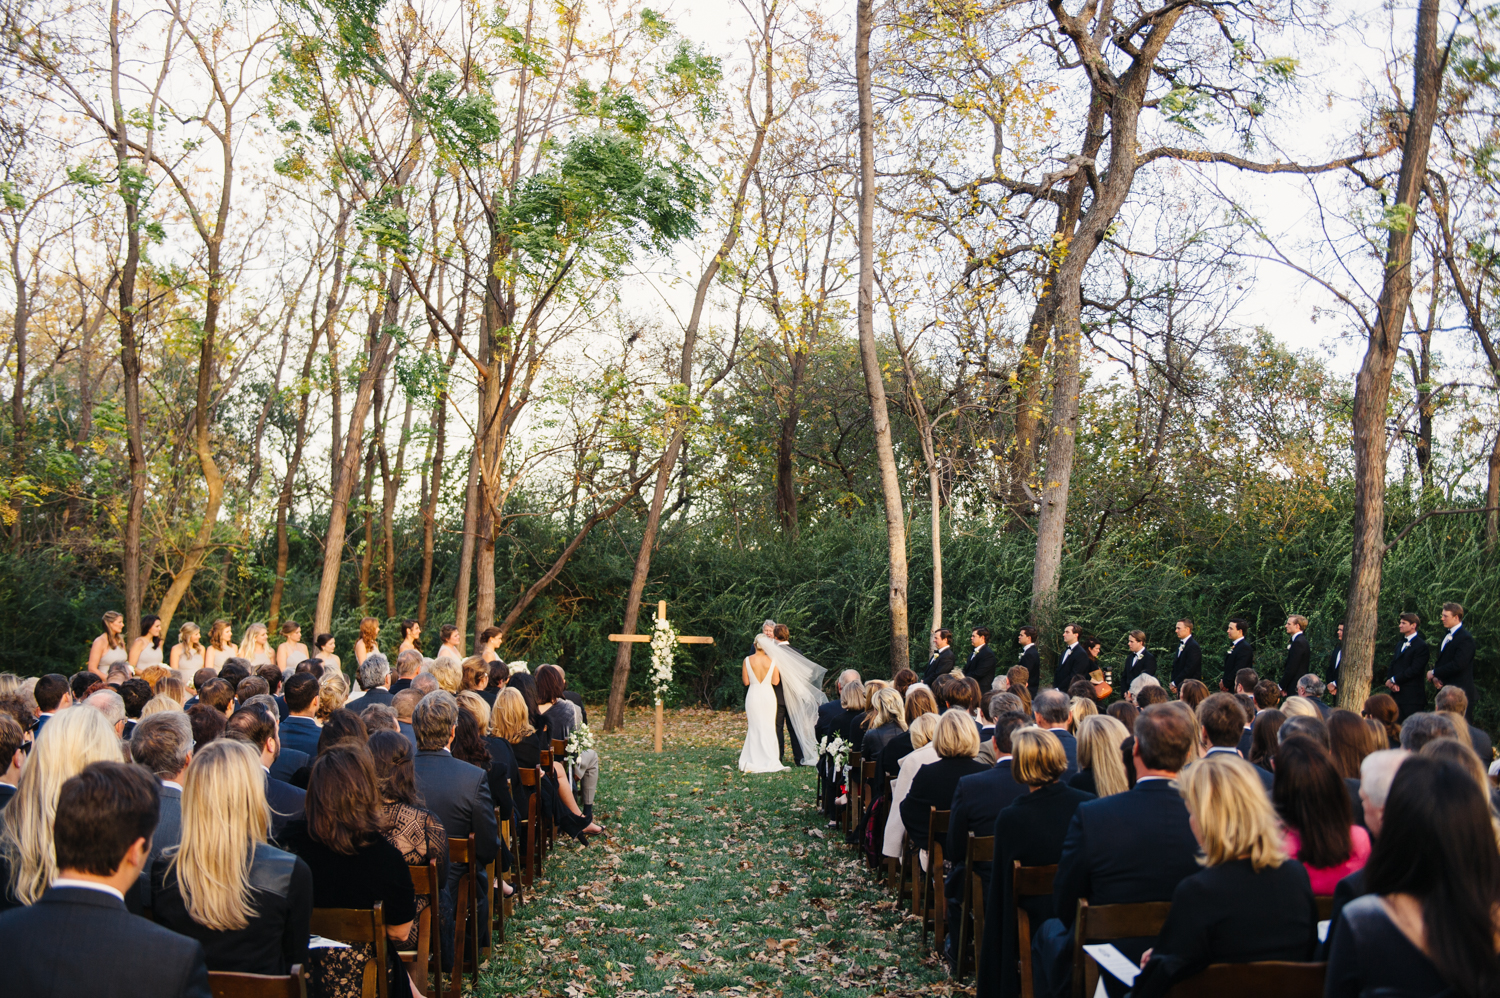 HeartoftheRanch.FtWorth.Wedding.LC.53.jpg